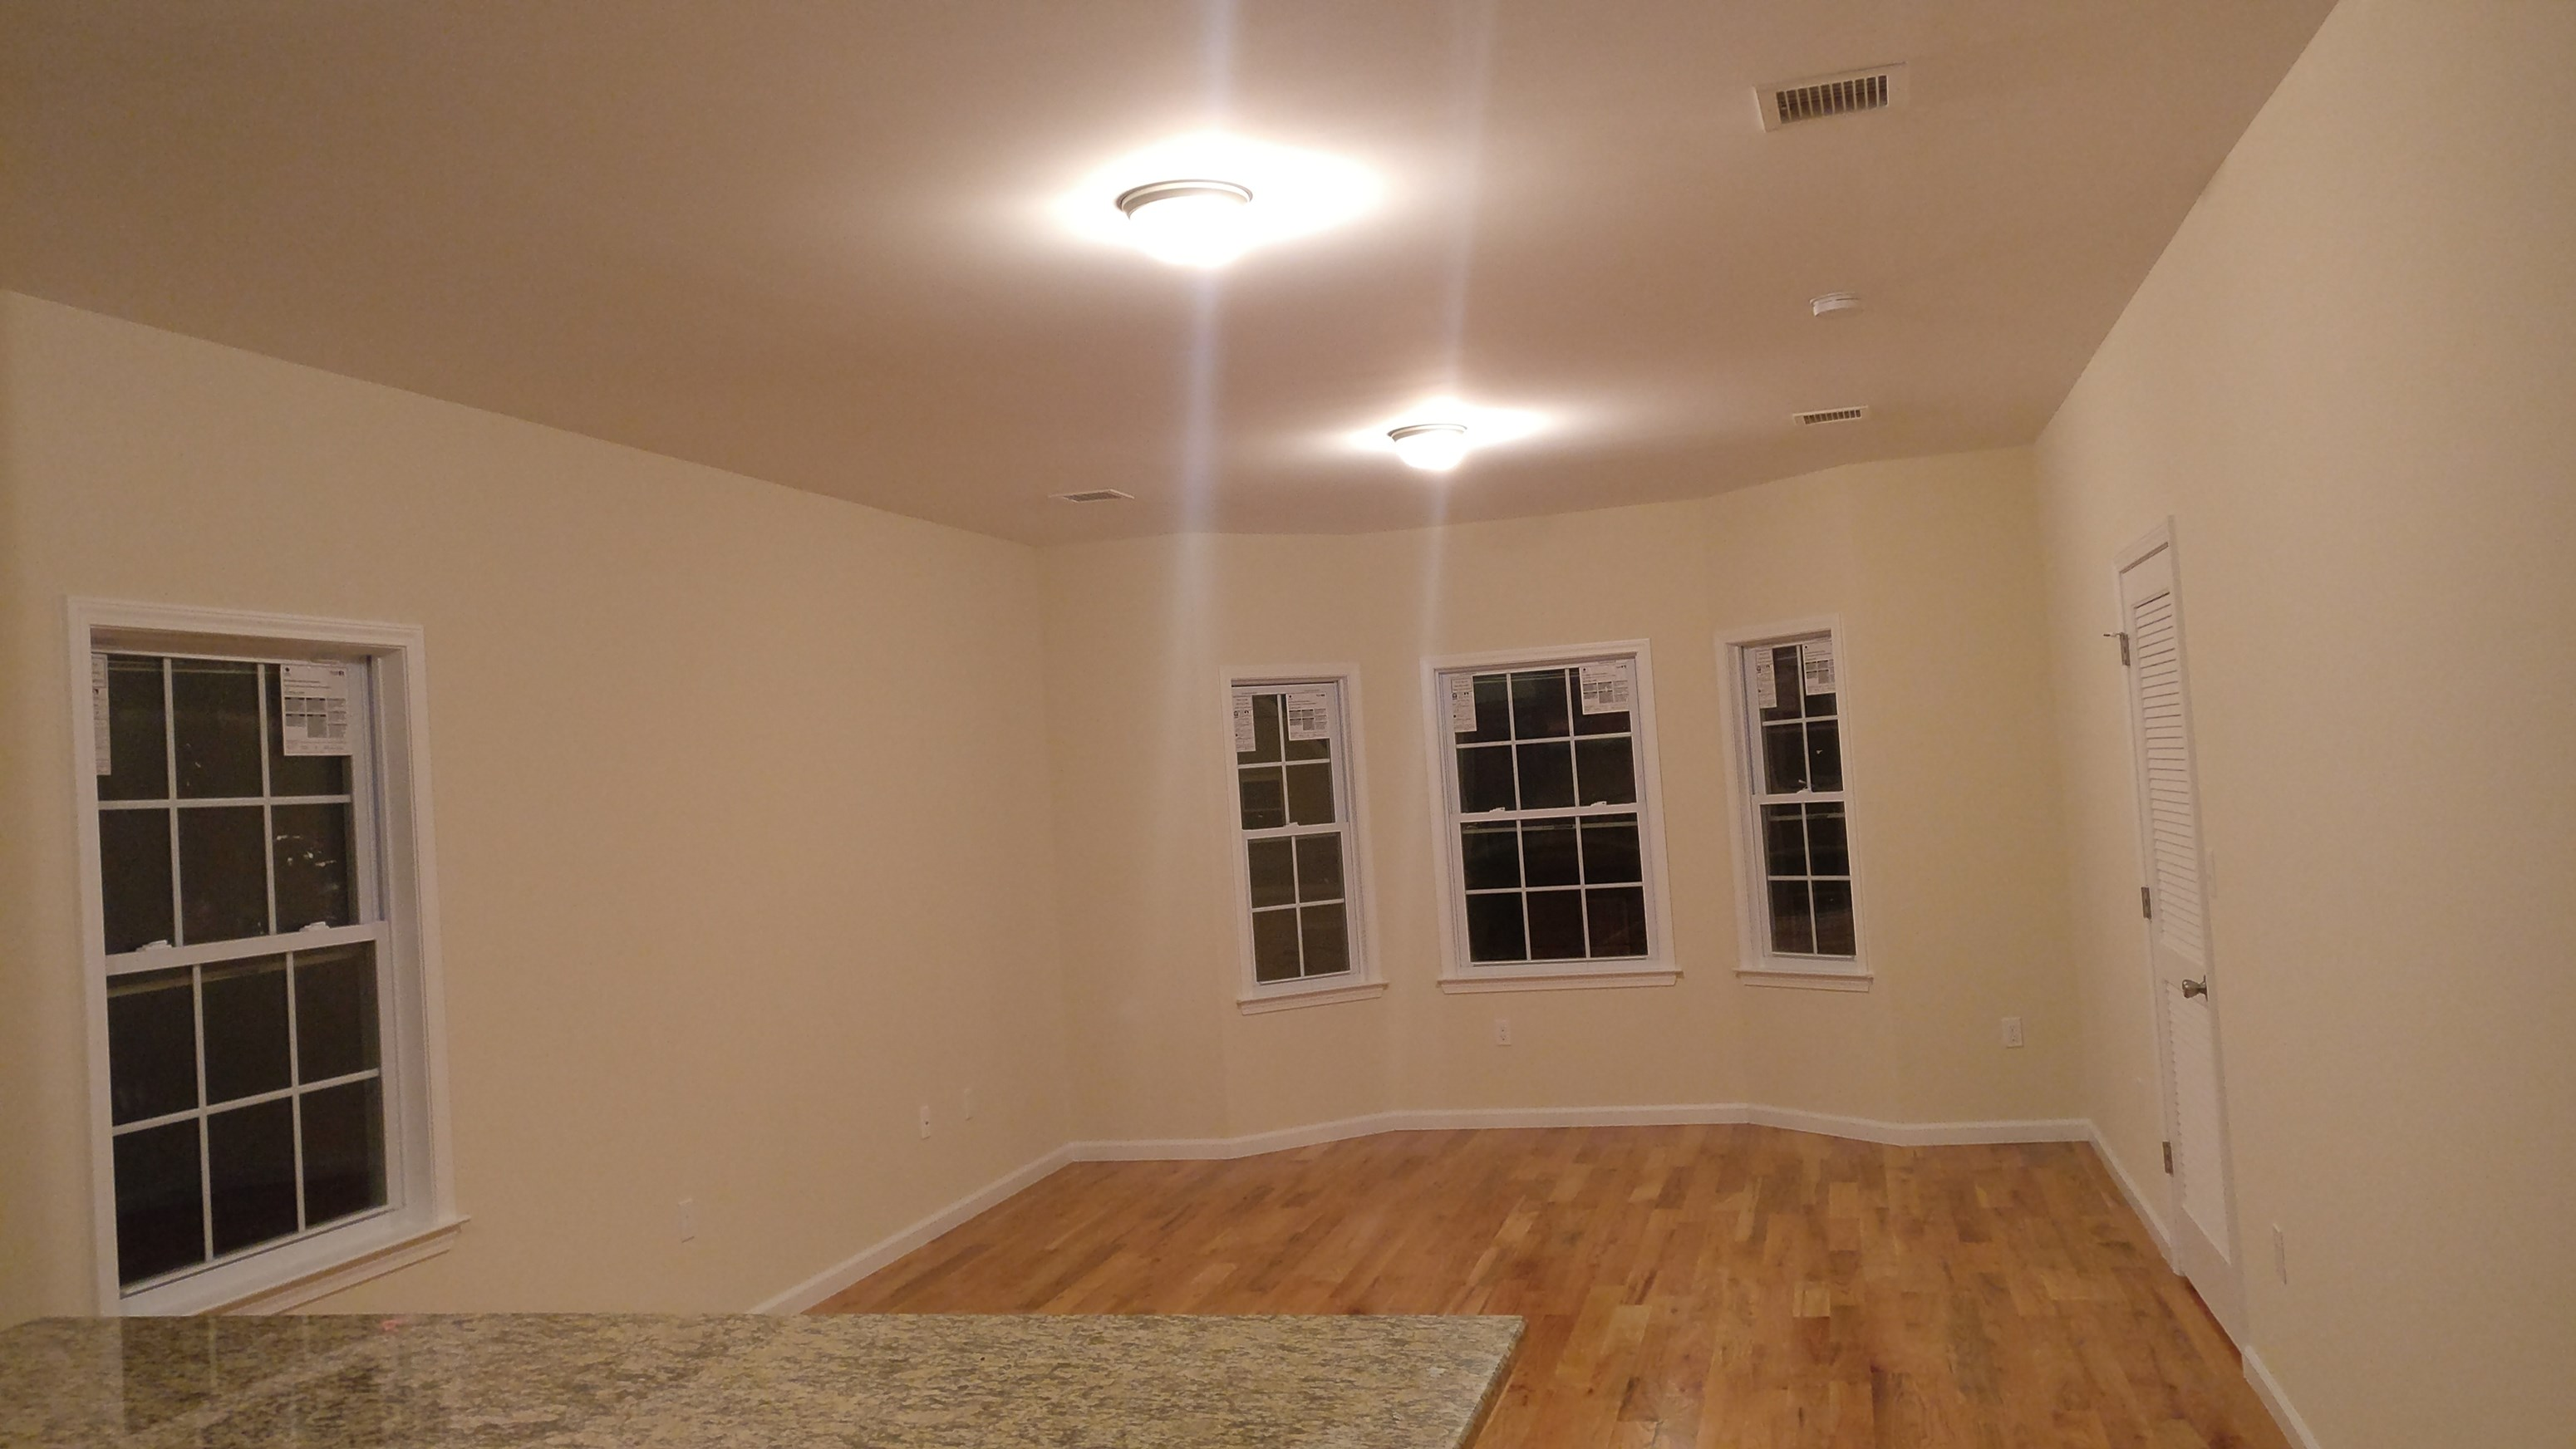 2 Bedroom Apartments In Linden Nj For 950 Aeyx Info. 2 Bedroom Apartments In Linden Nj For  950   Nrys info